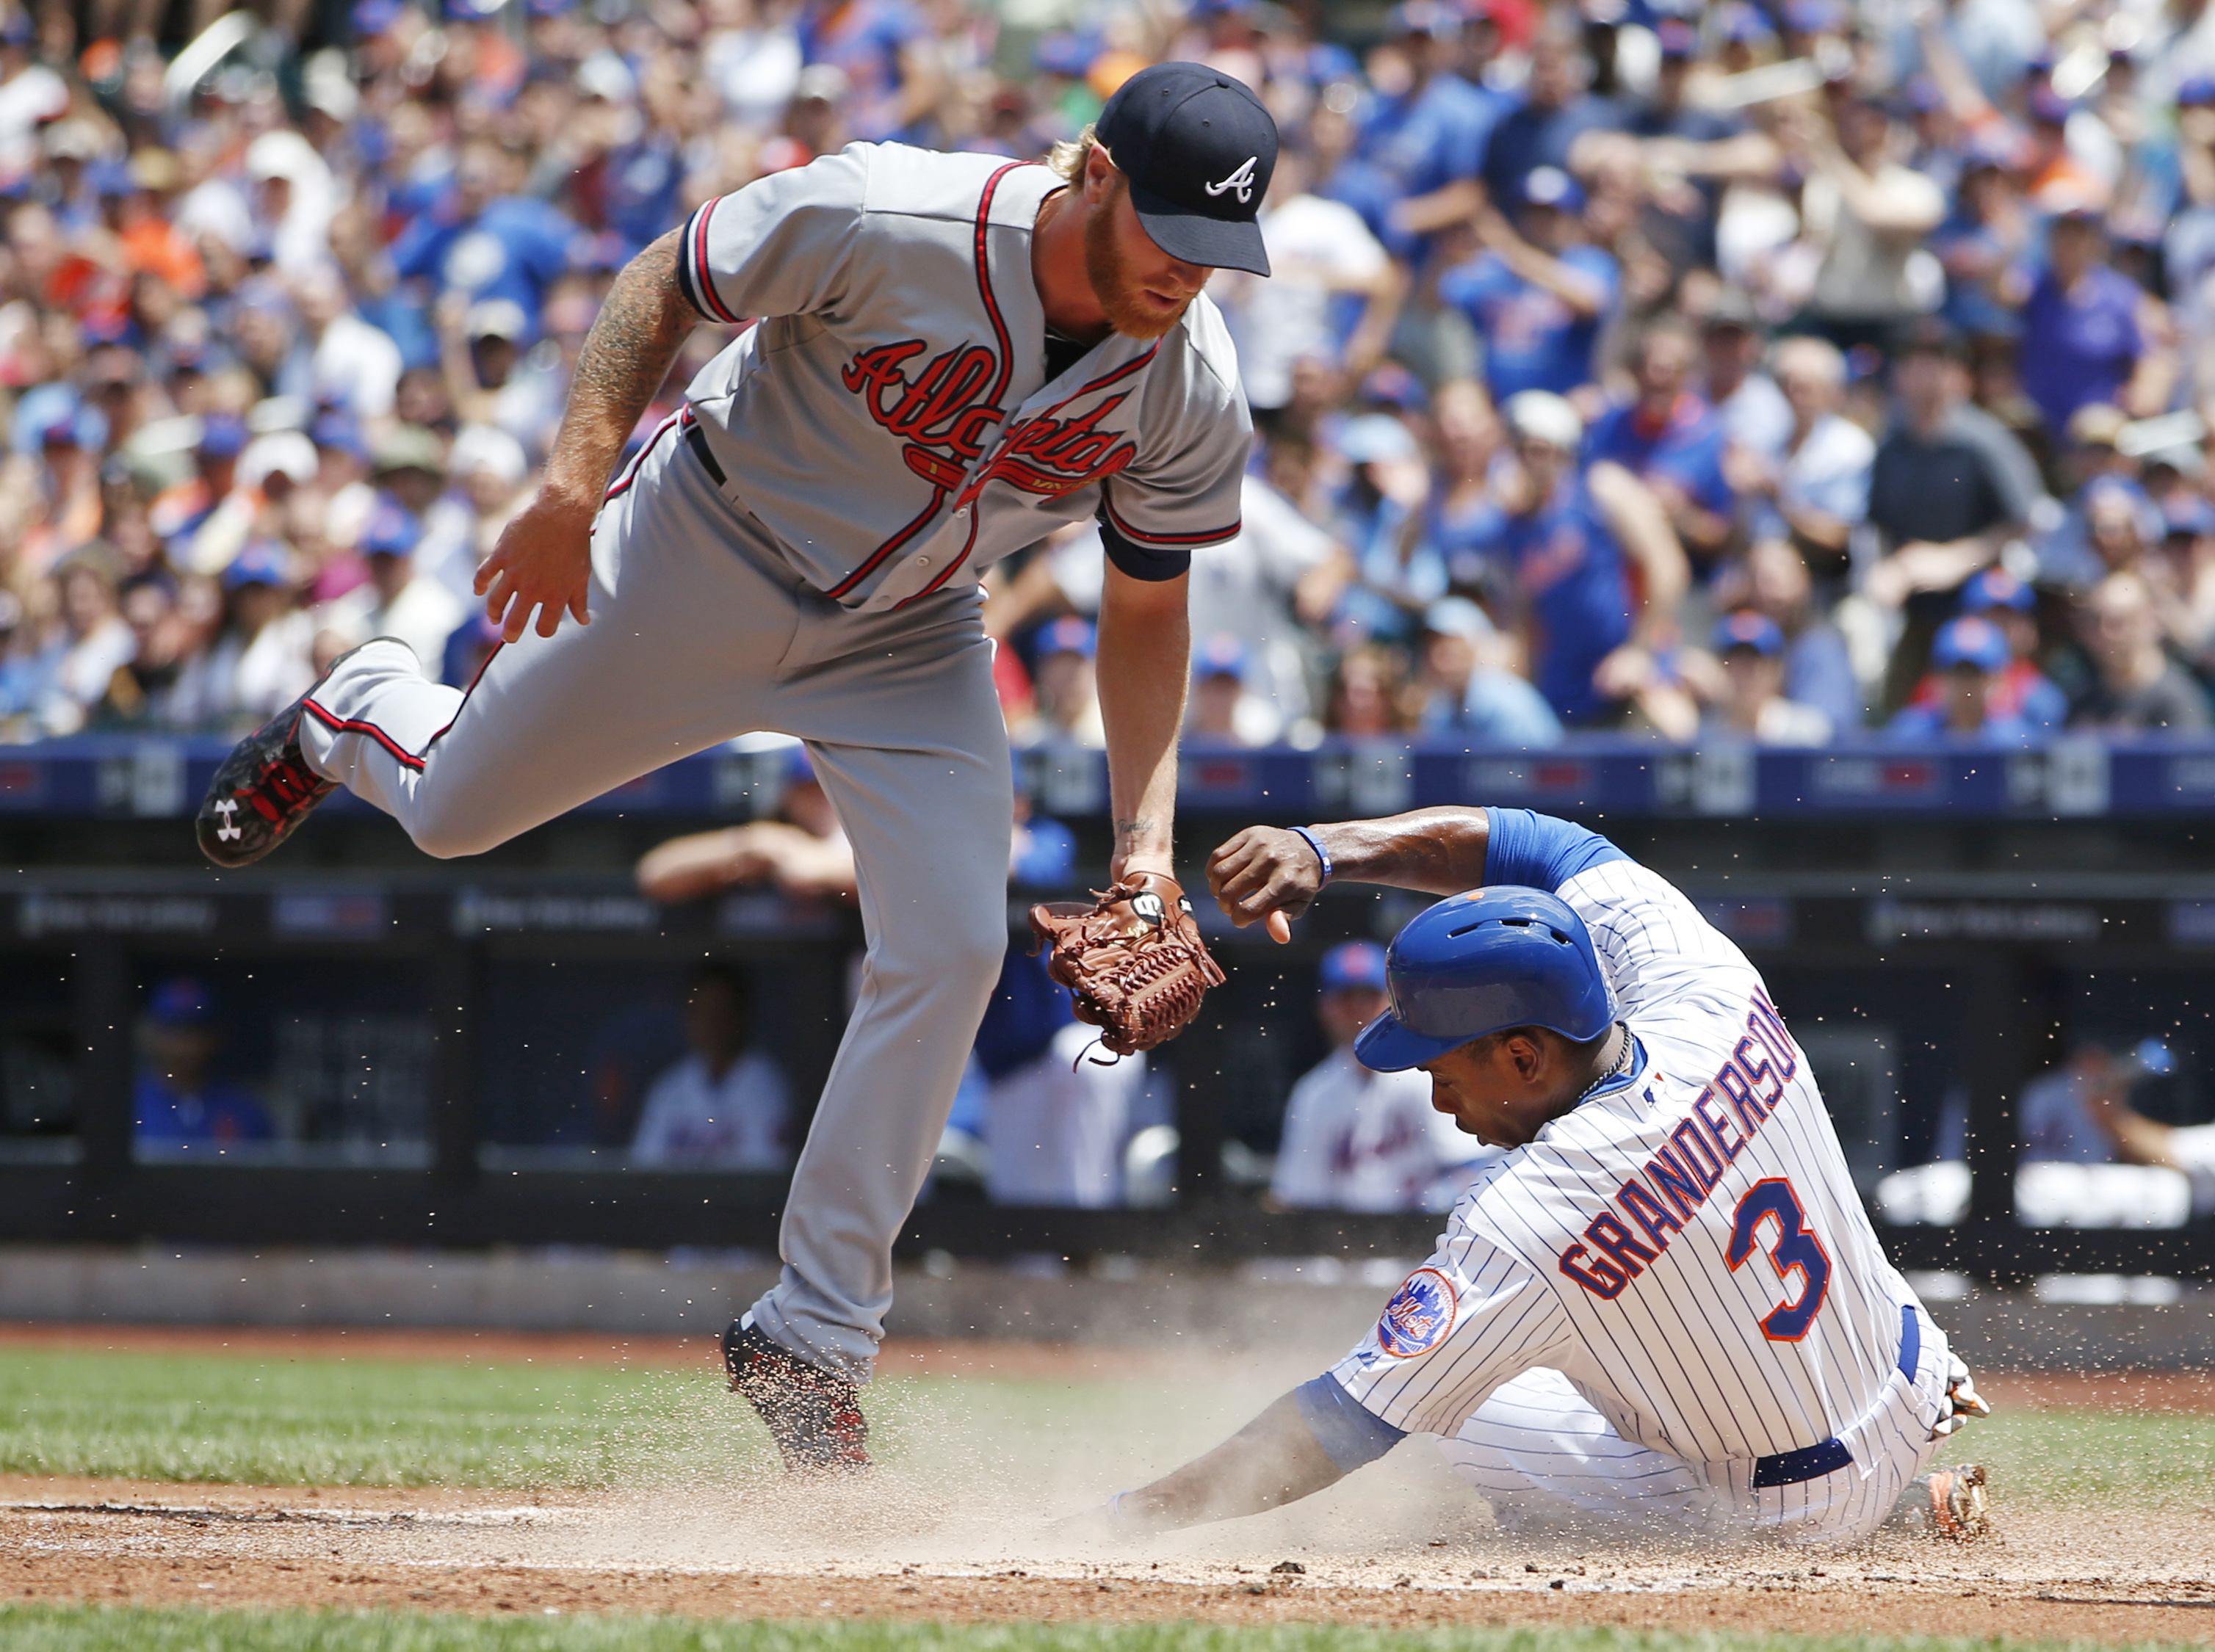 Atlanta Braves starting pitcher Mike Foltynewicz, left, has no play as New York Mets Curtis Granderson (3) slides in to score on a passed ball in the first inning of a baseball game in New York, Sunday, June 14, 2015. (AP Photo/Kathy Willens)